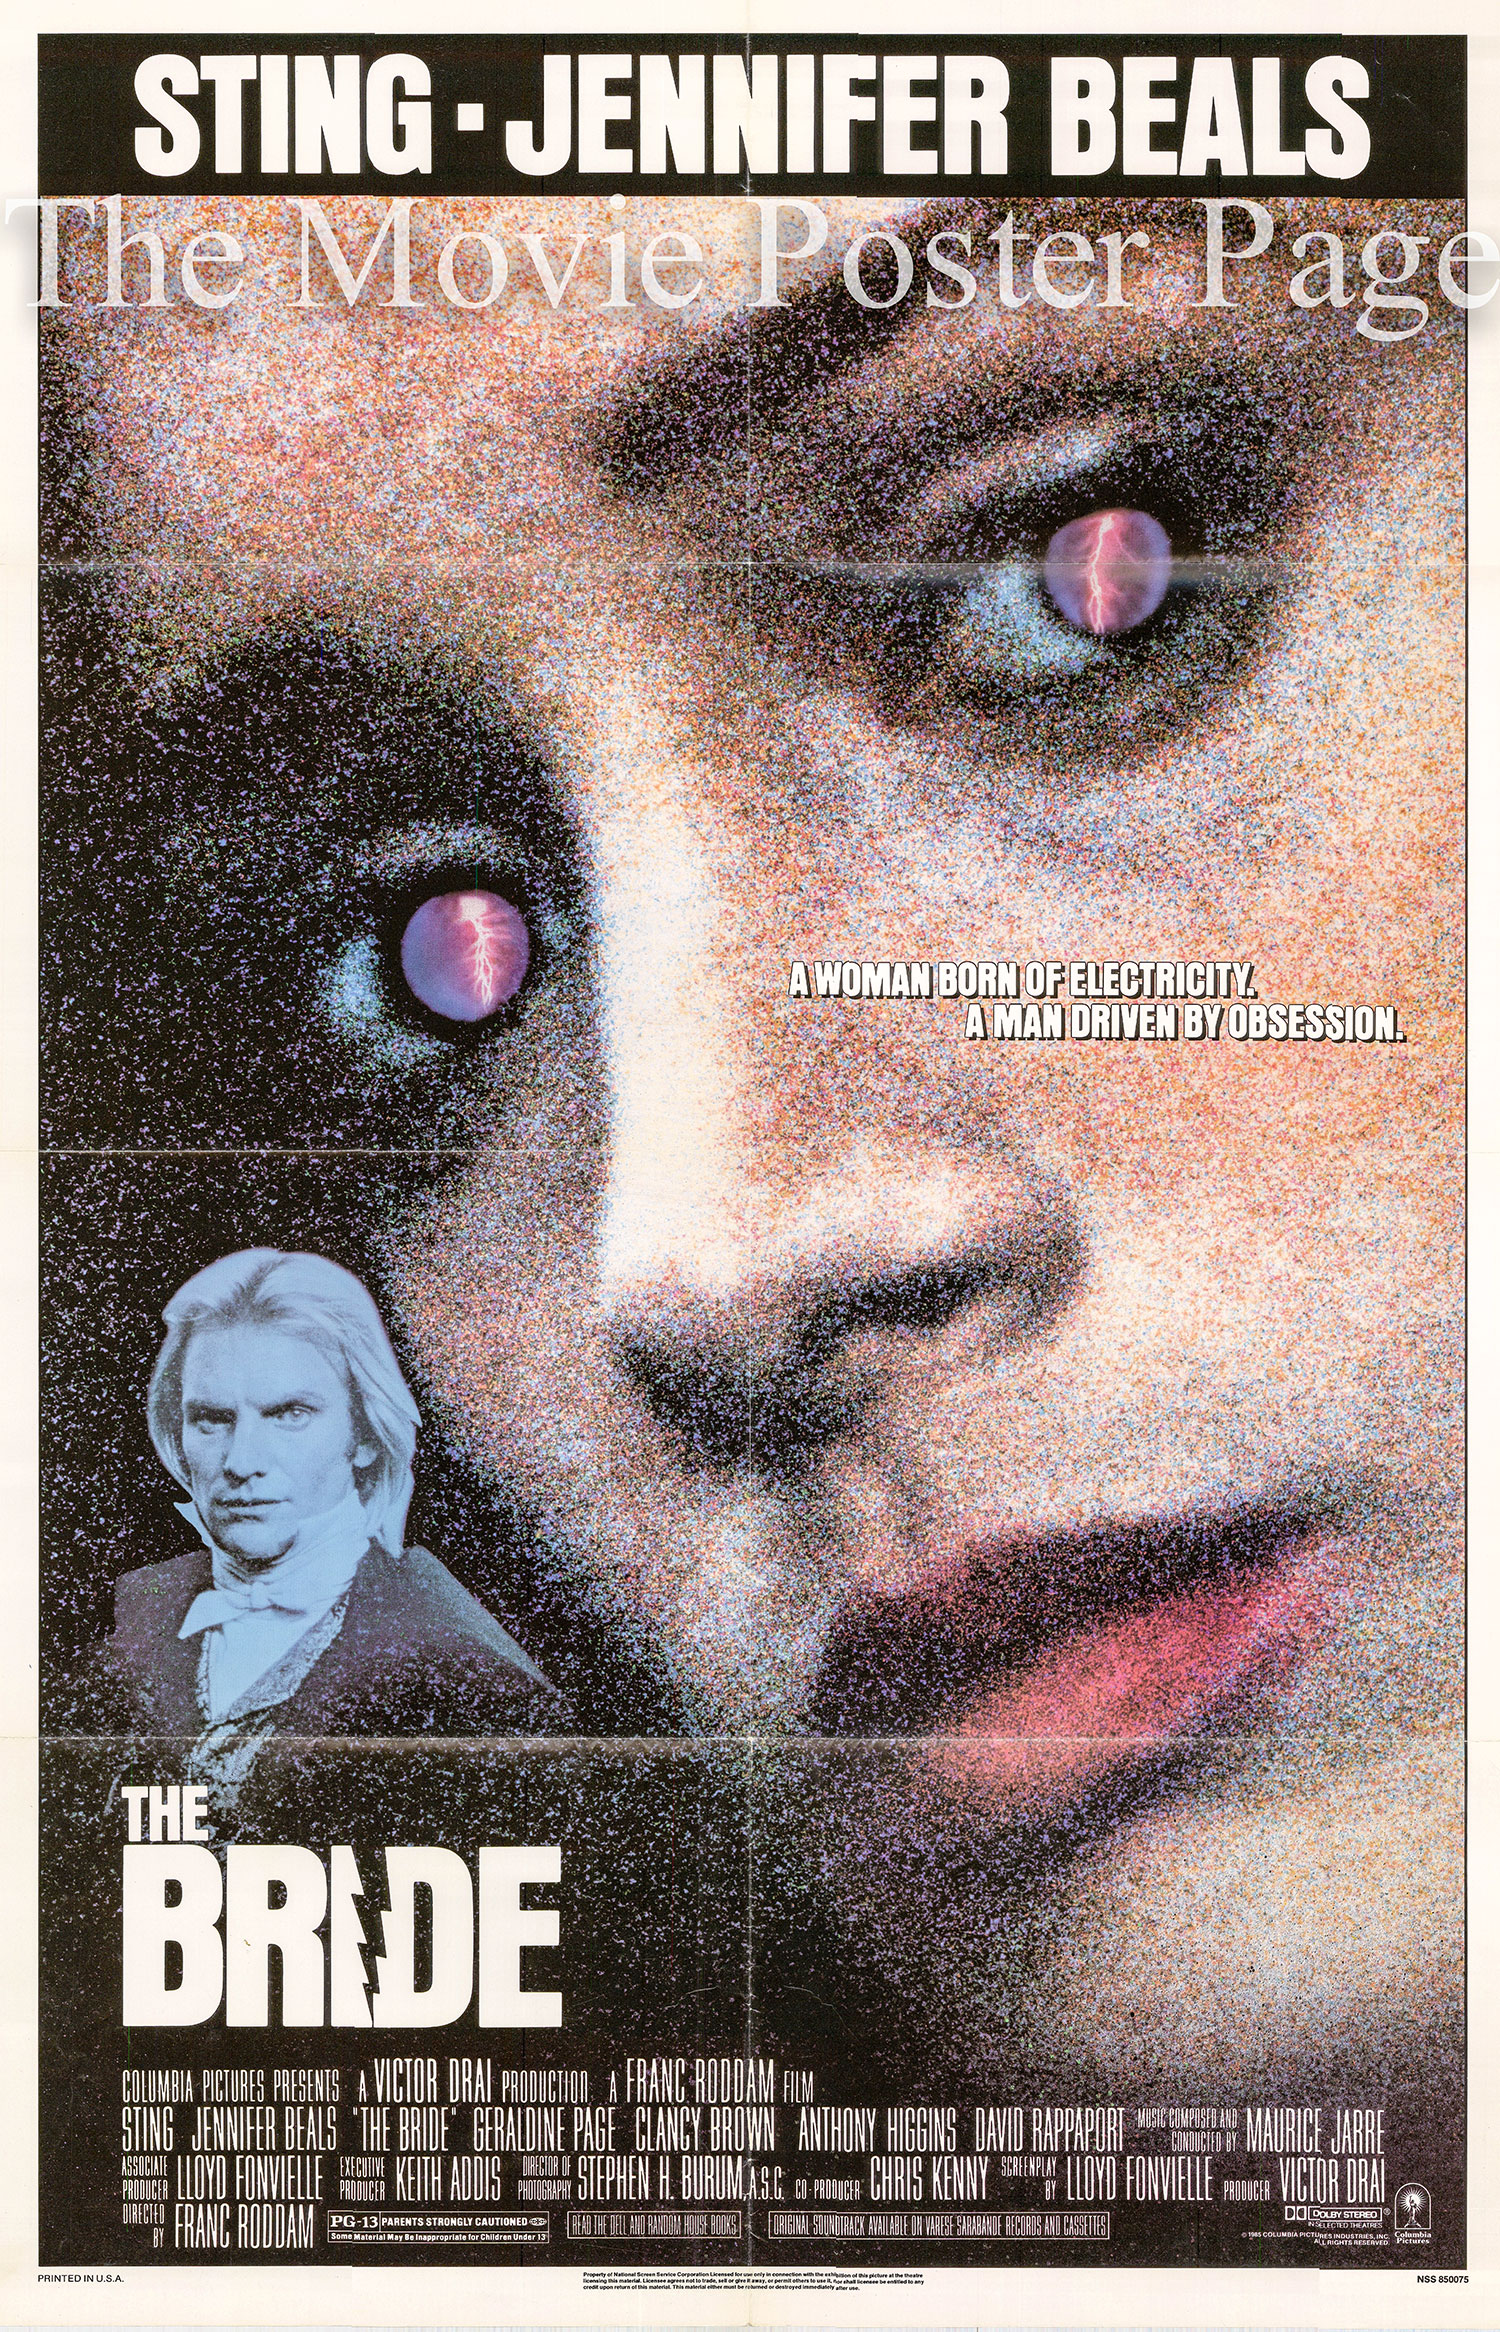 Pictured is a US one-sheet poster for the 1985 Franc Roddam film The Bride starring Sting and Jennifer Beals.